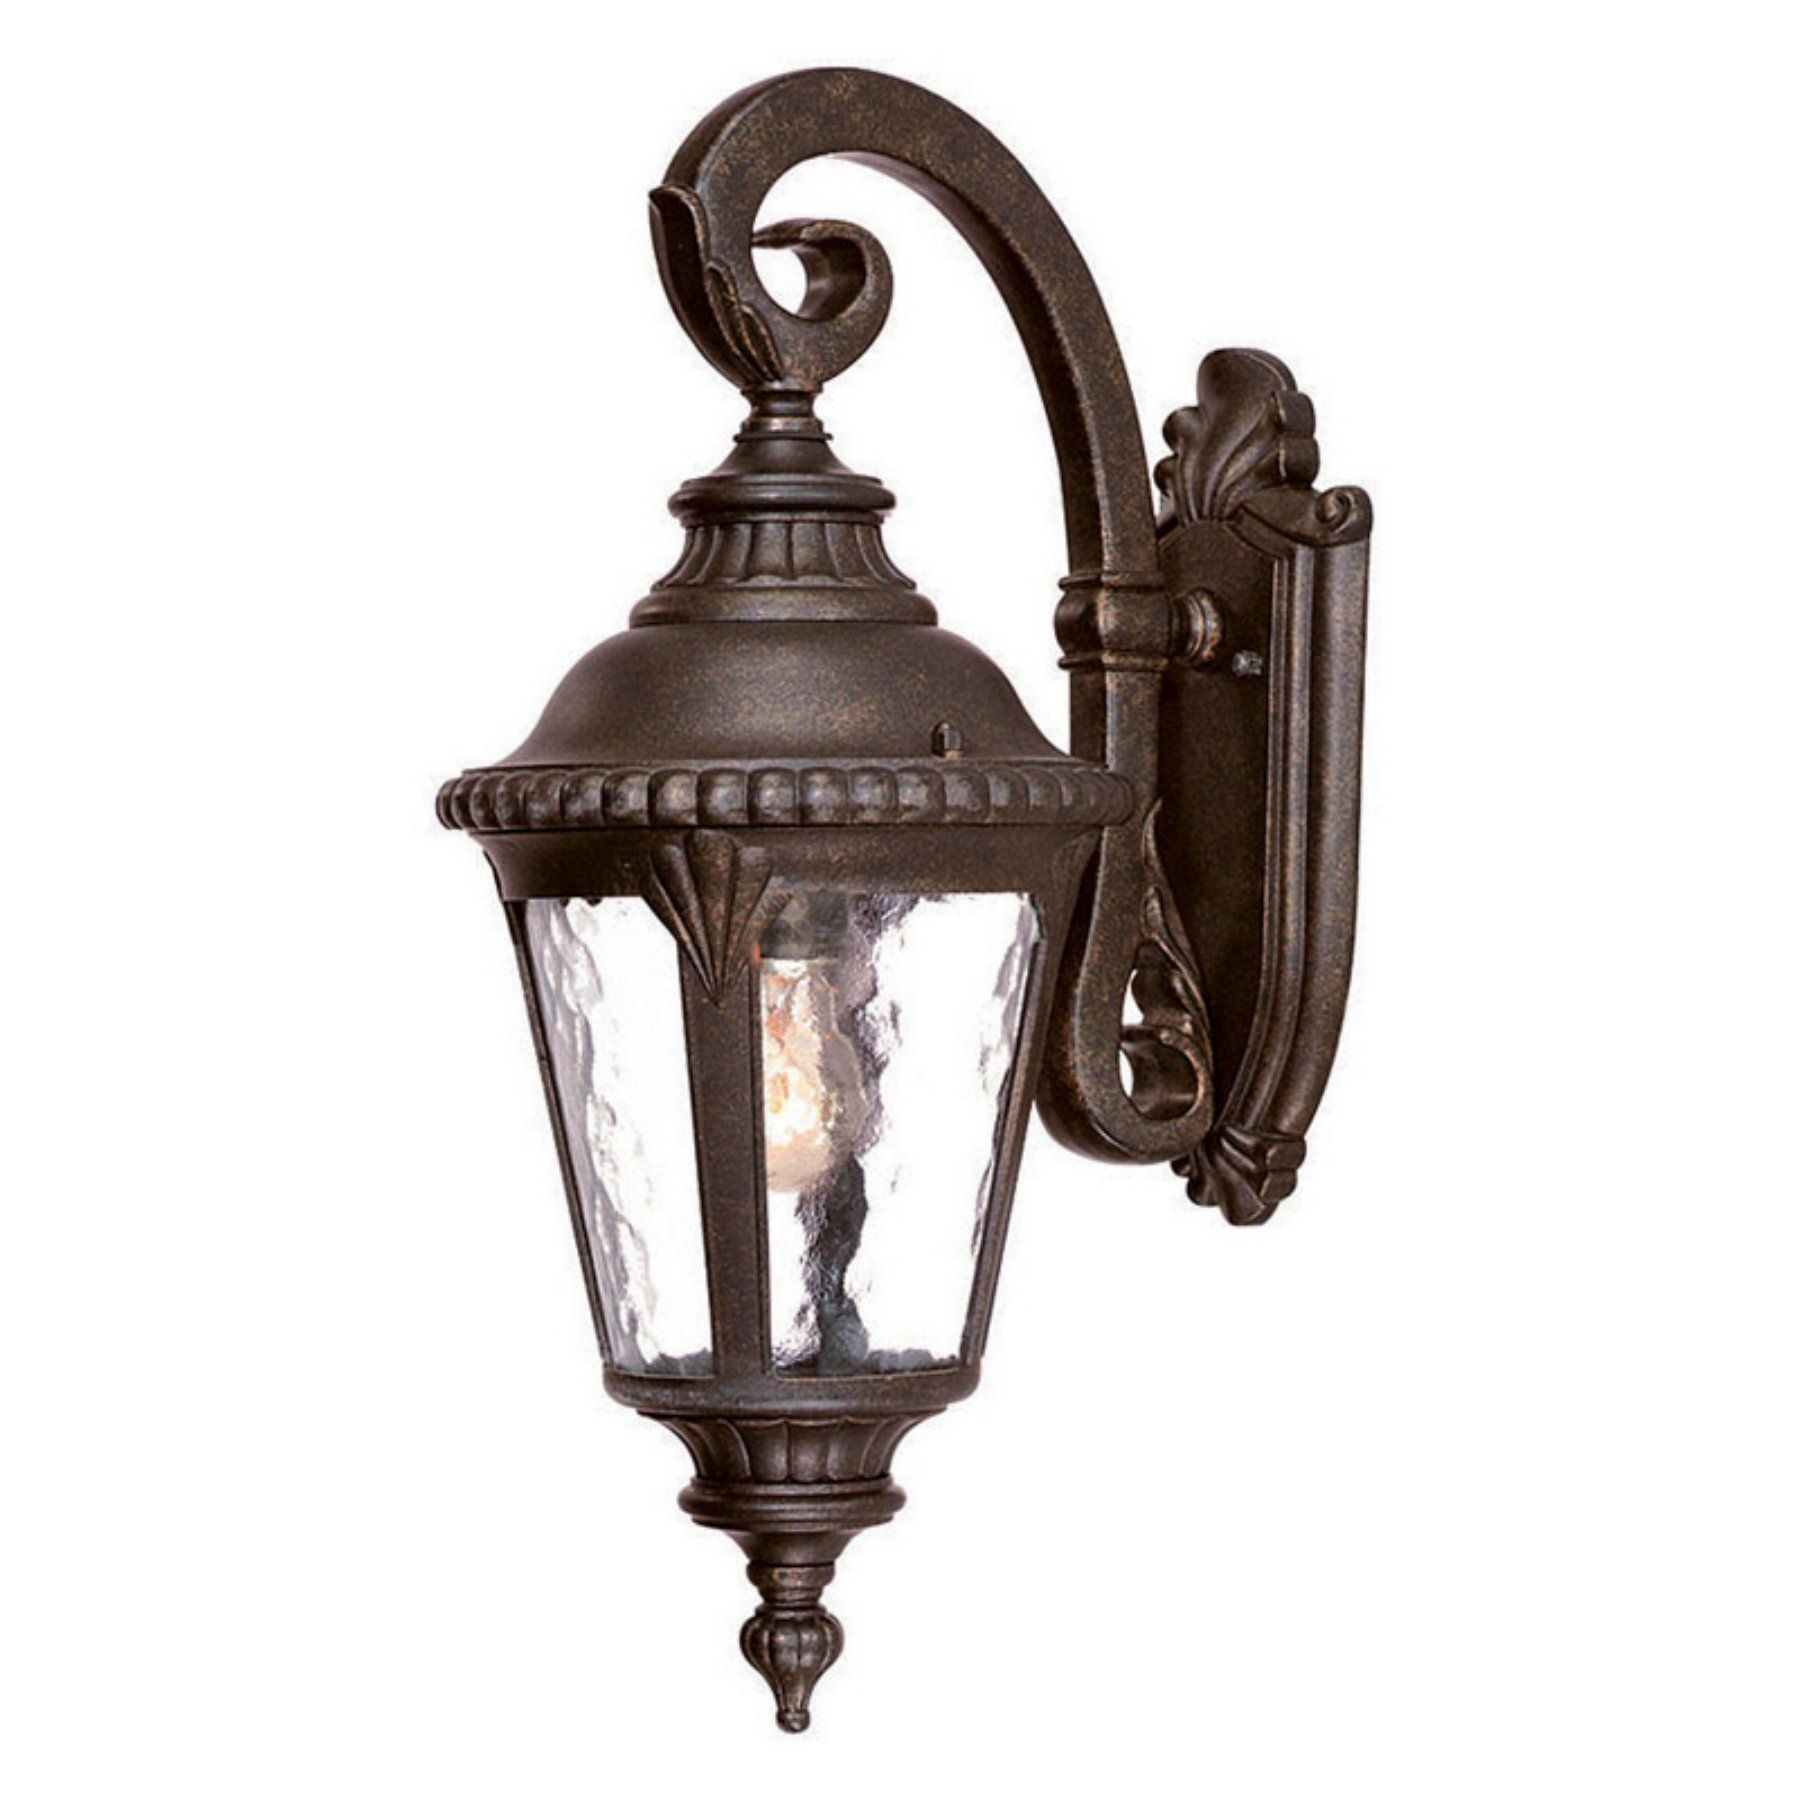 Decorative Wall Light Fixtures